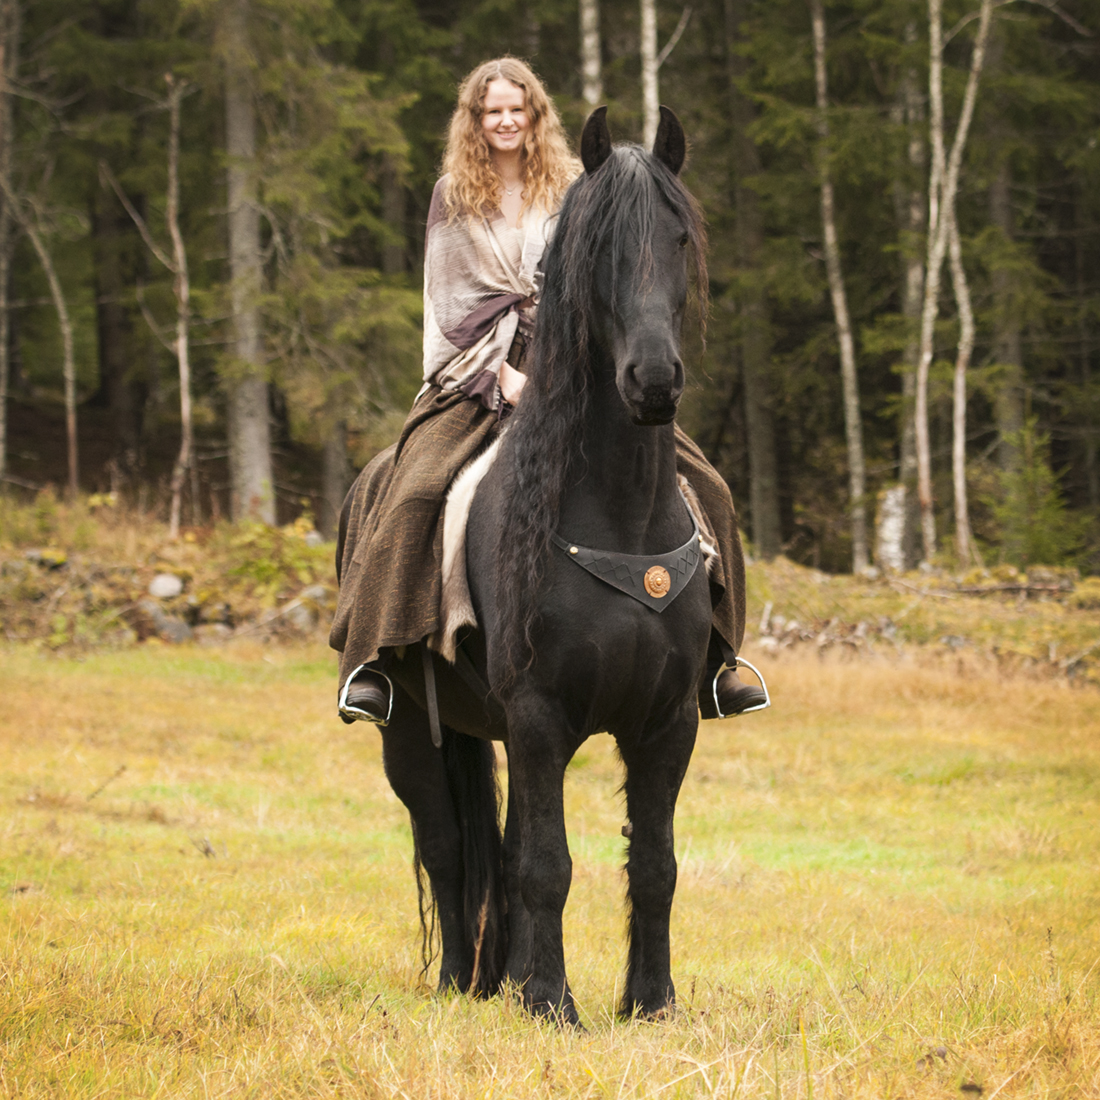 outlander_photoshoot_friesian1